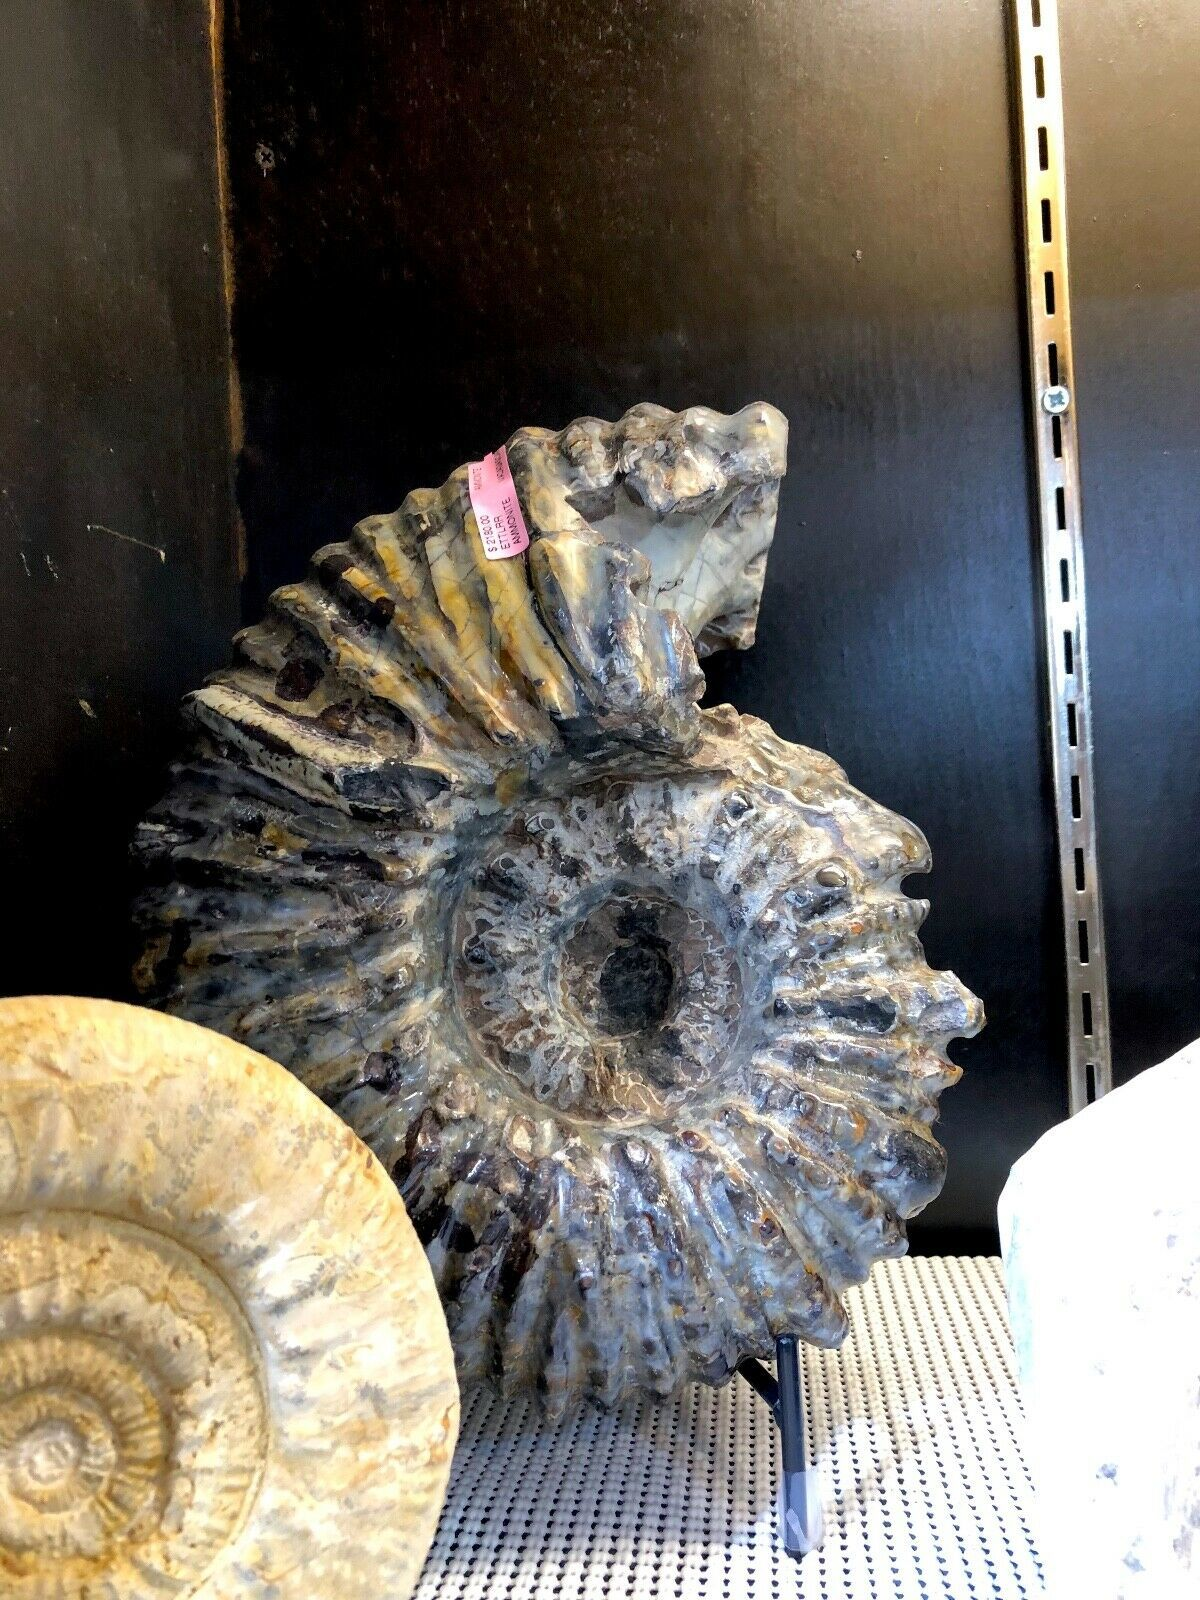 AMMONITE DINOSAUR FOSSIL HOME DECOR PIRATE GOLD COINS JURASSIC DISPLAY TREASURE